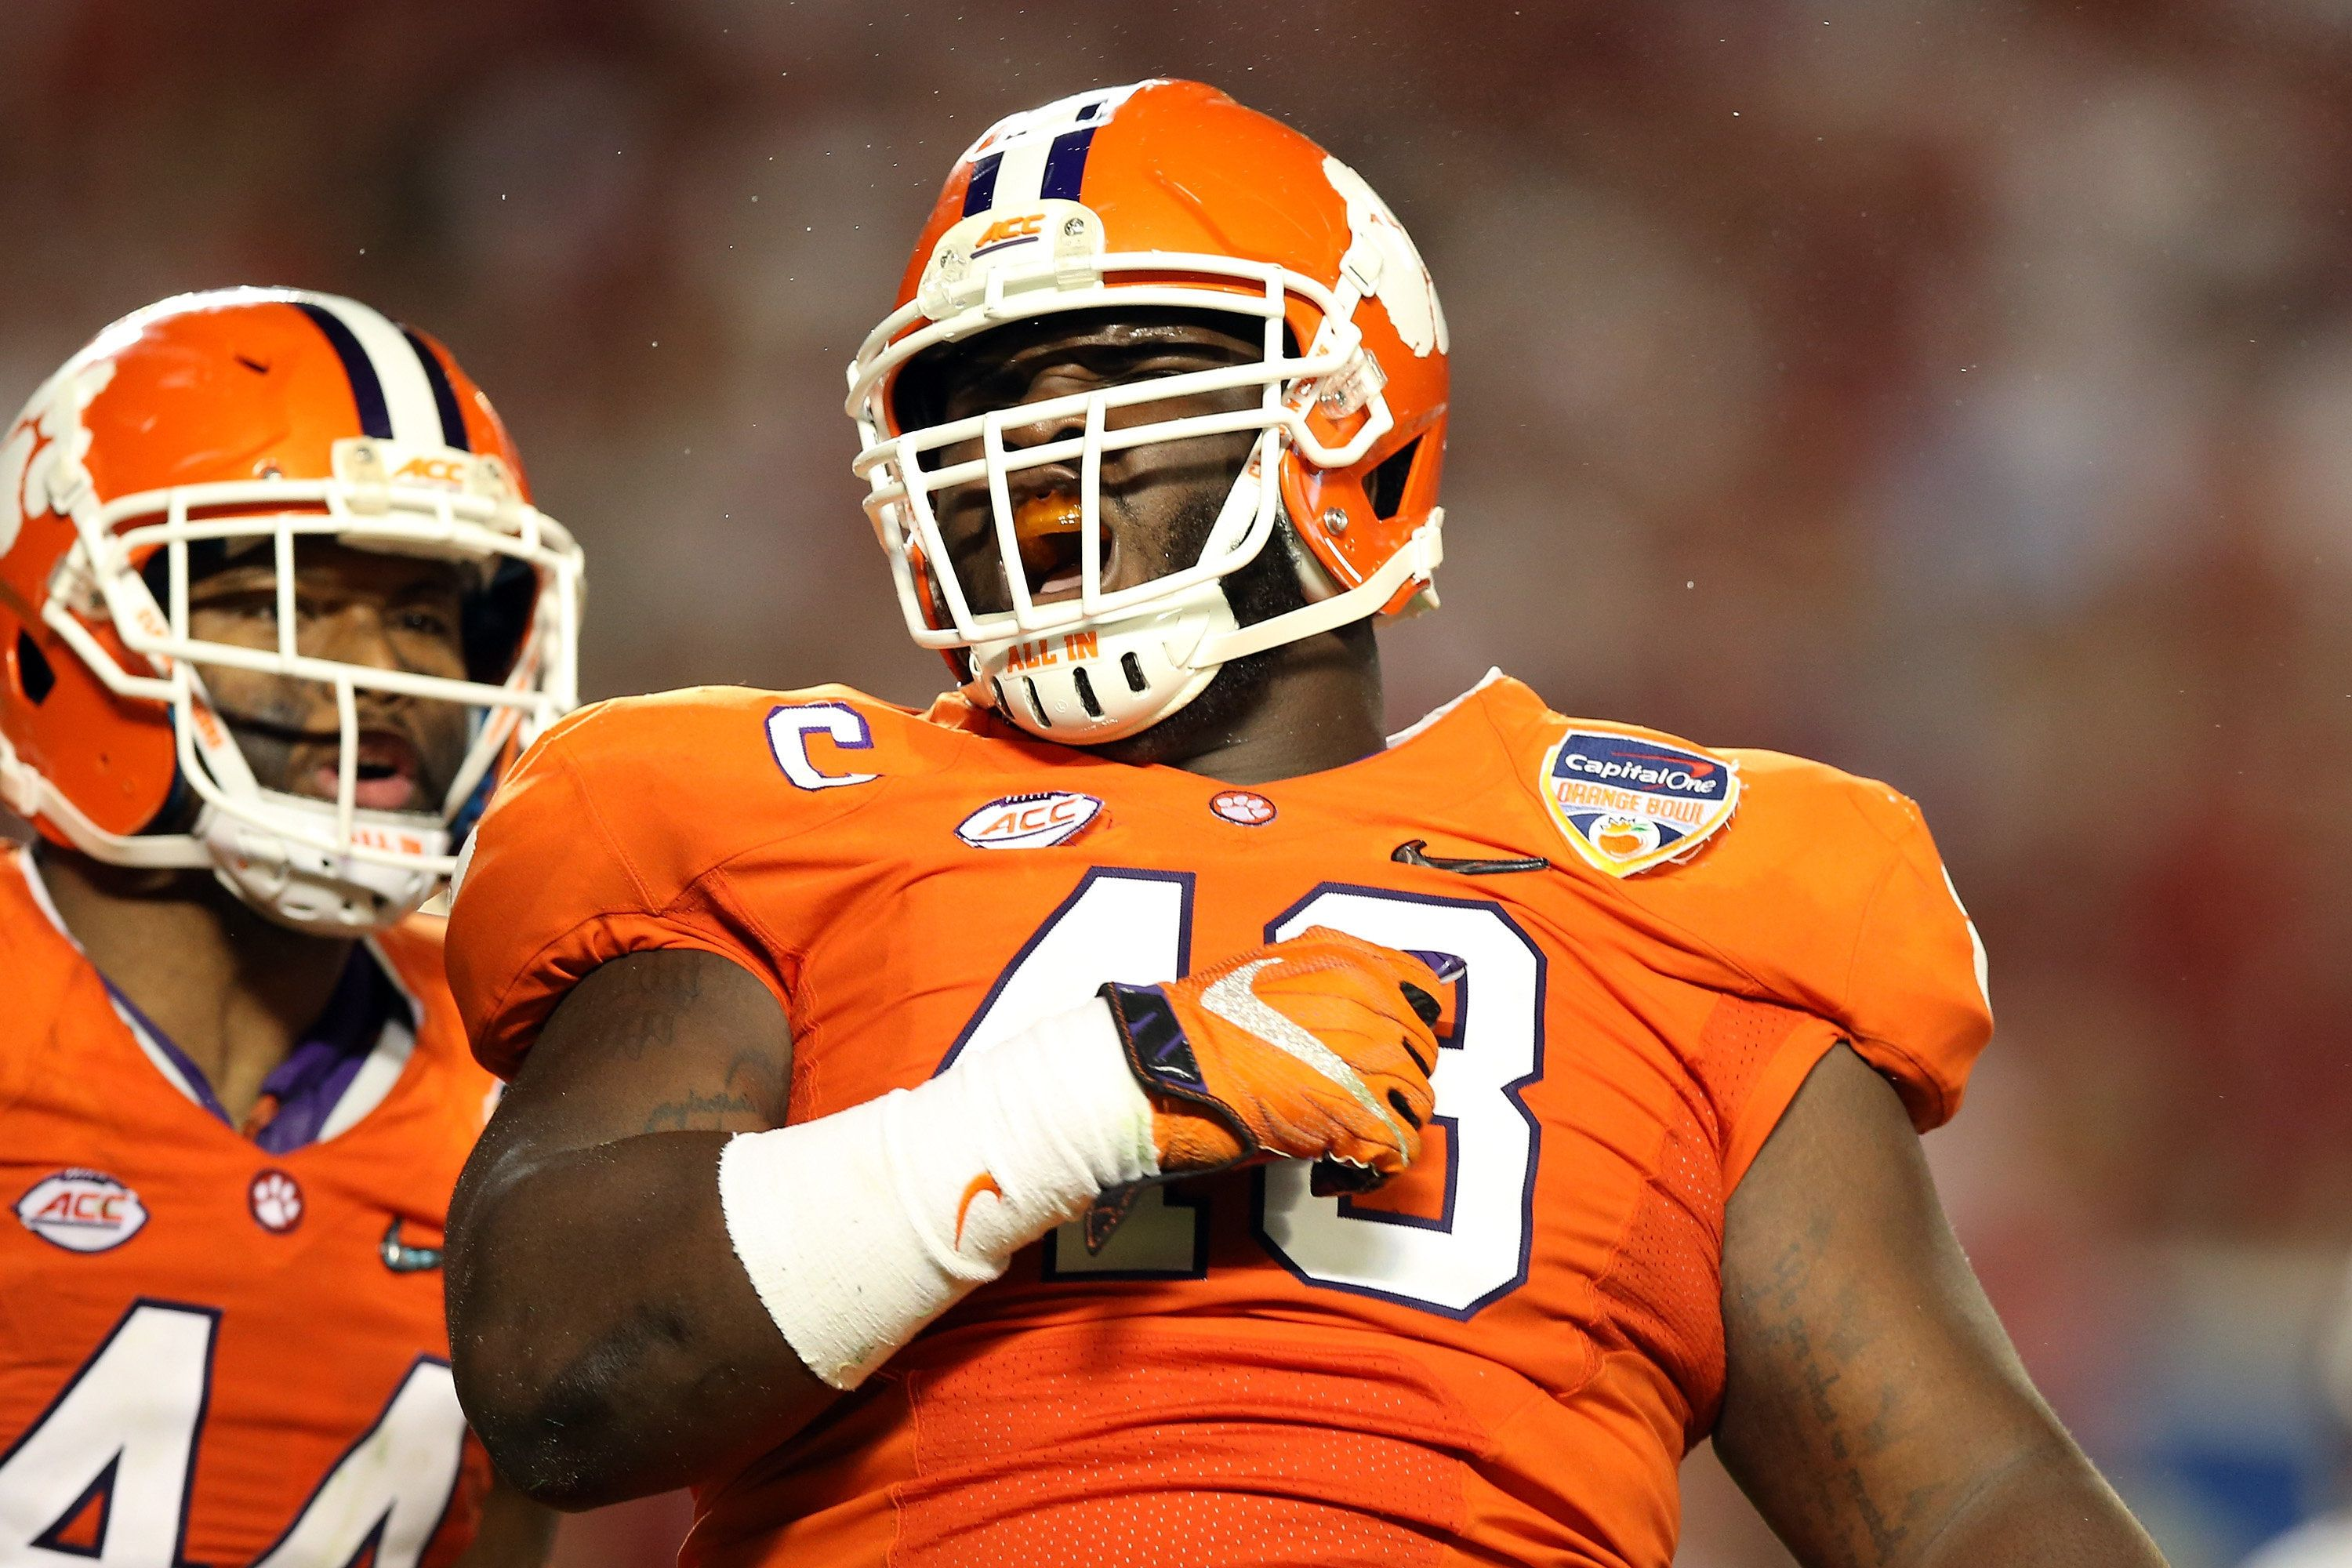 MIAMI GARDENS, FL - DECEMBER 31:  D.J. Reader #48 of the Clemson Tigers reacts in the second half against the Oklahoma Sooners during the 2015 Capital One Orange Bowl at Sun Life Stadium on December 31, 2015 in Miami Gardens, Florida.  (Photo by Andy Lyons/Getty Images)